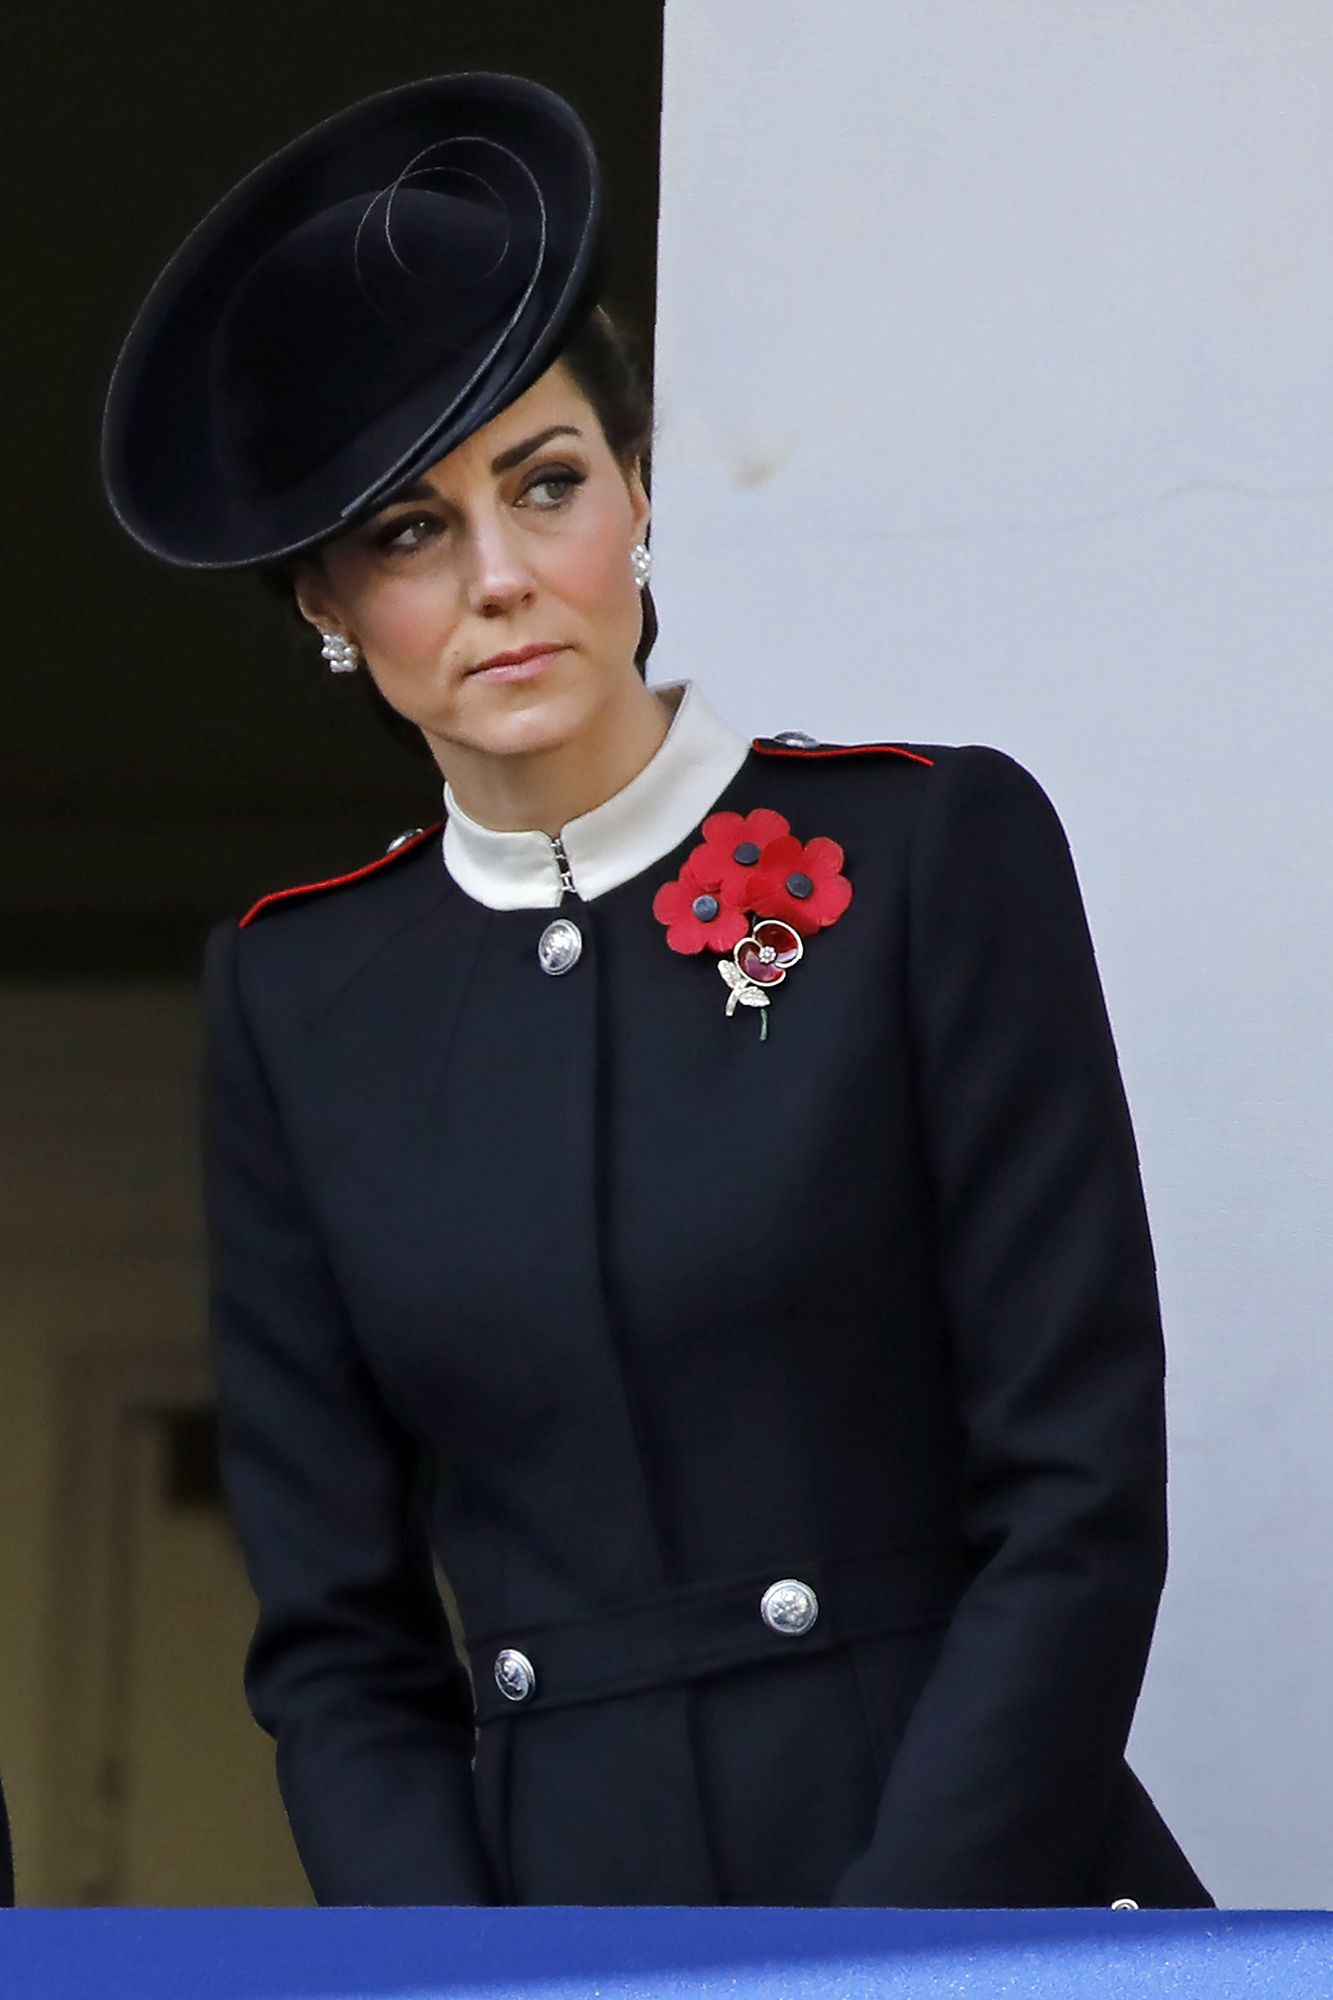 meghan harry kate and william join the queen for remembrance day ceremony in london kate middleton latest duchess kate kate middleton meghan harry kate and william join